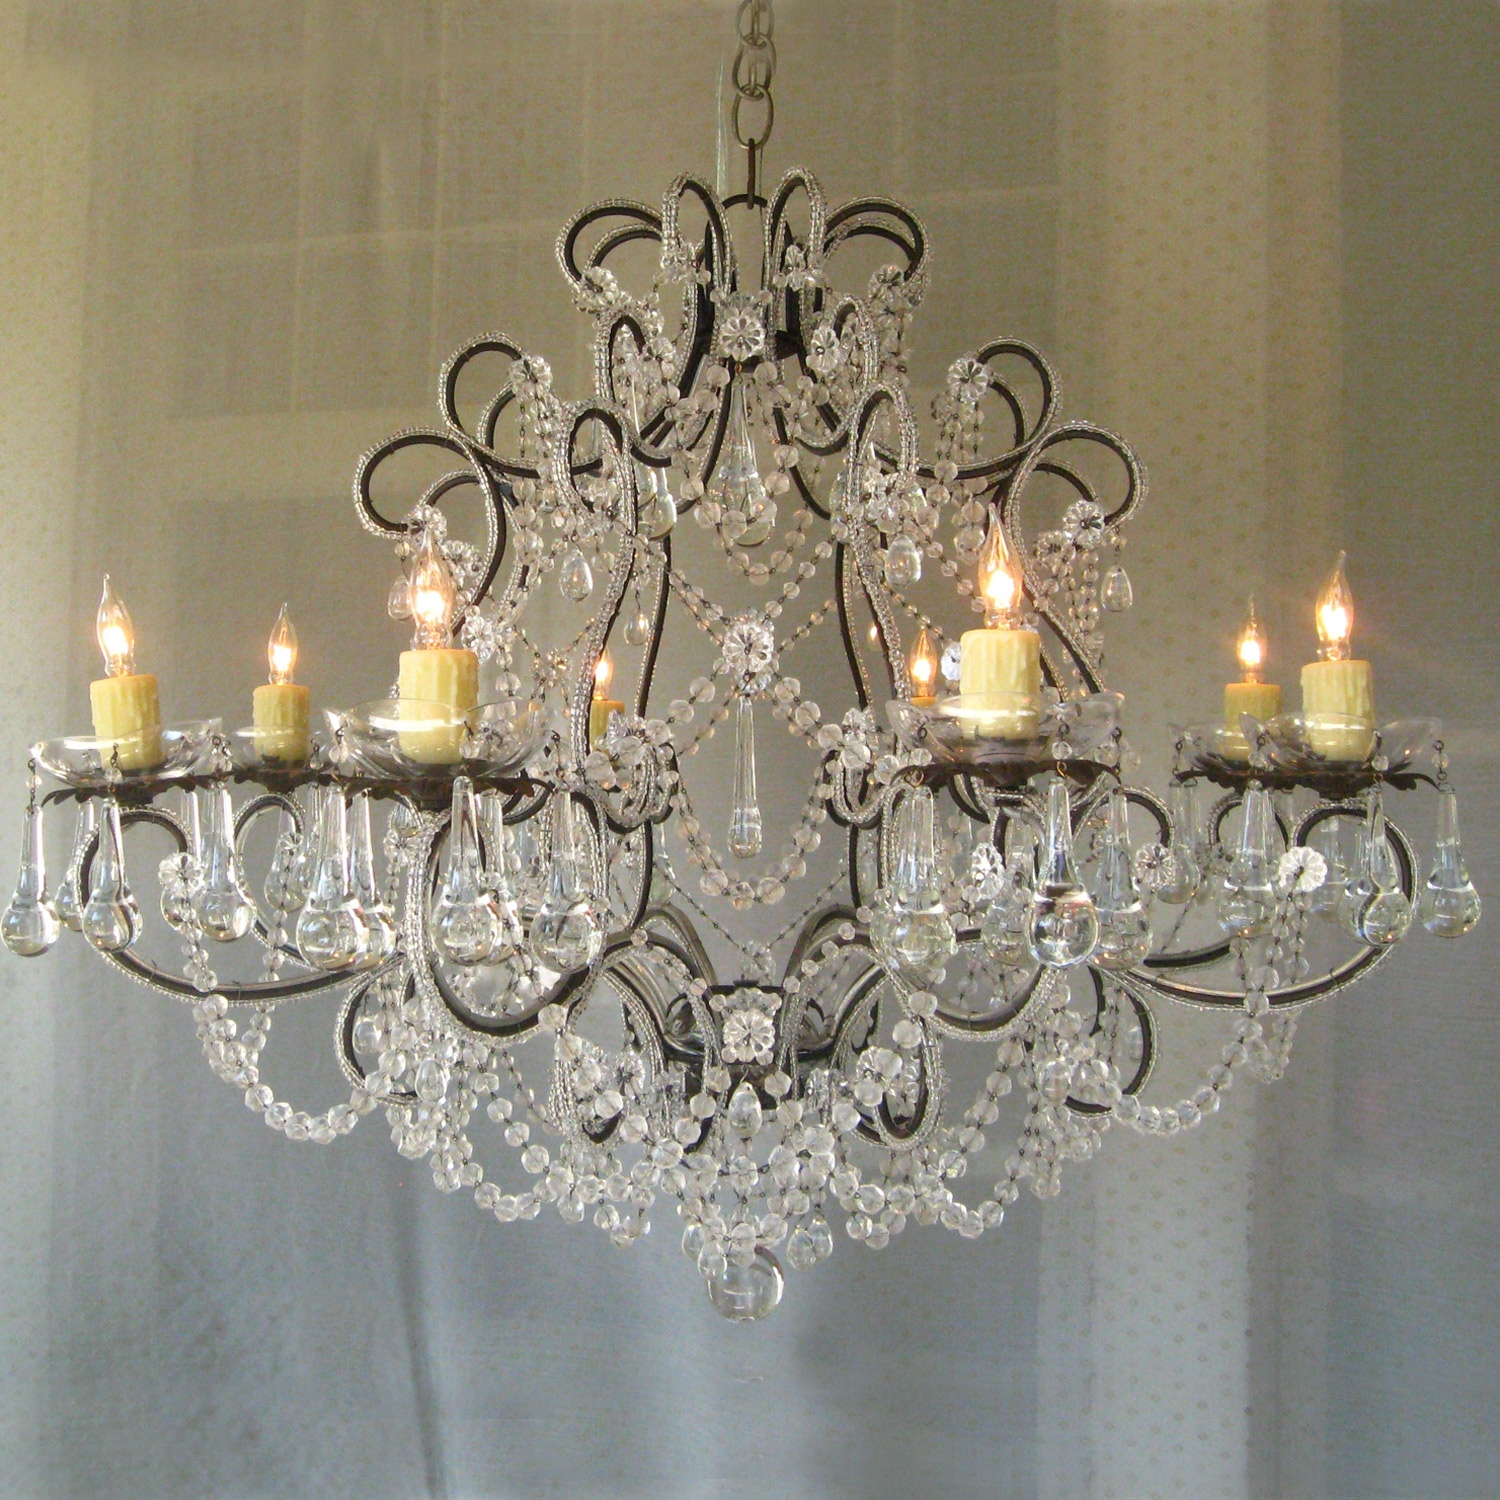 Popular Photo of Country Chic Chandelier